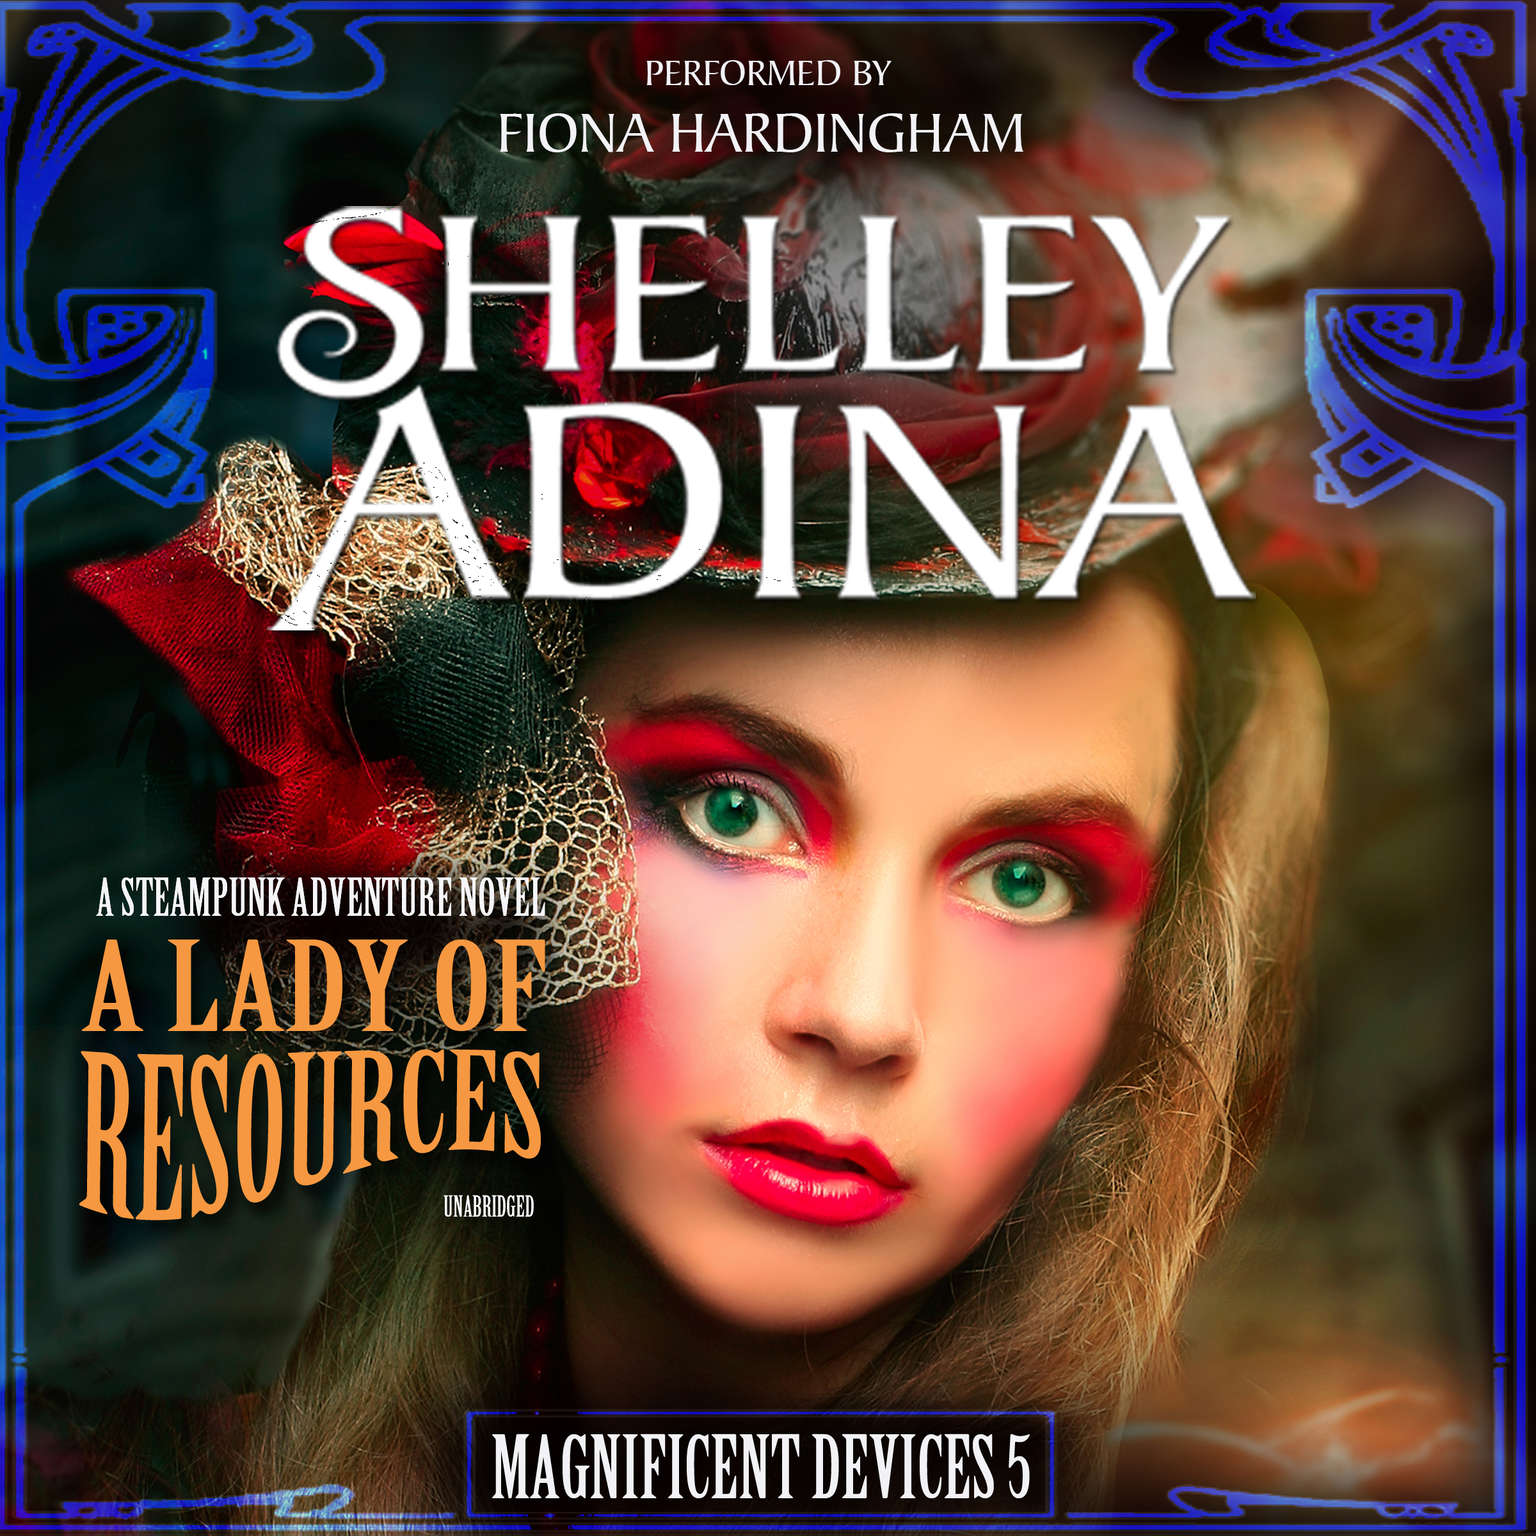 A Lady of Resources: A Steampunk Adventure Novel Audiobook, by Shelley Adina